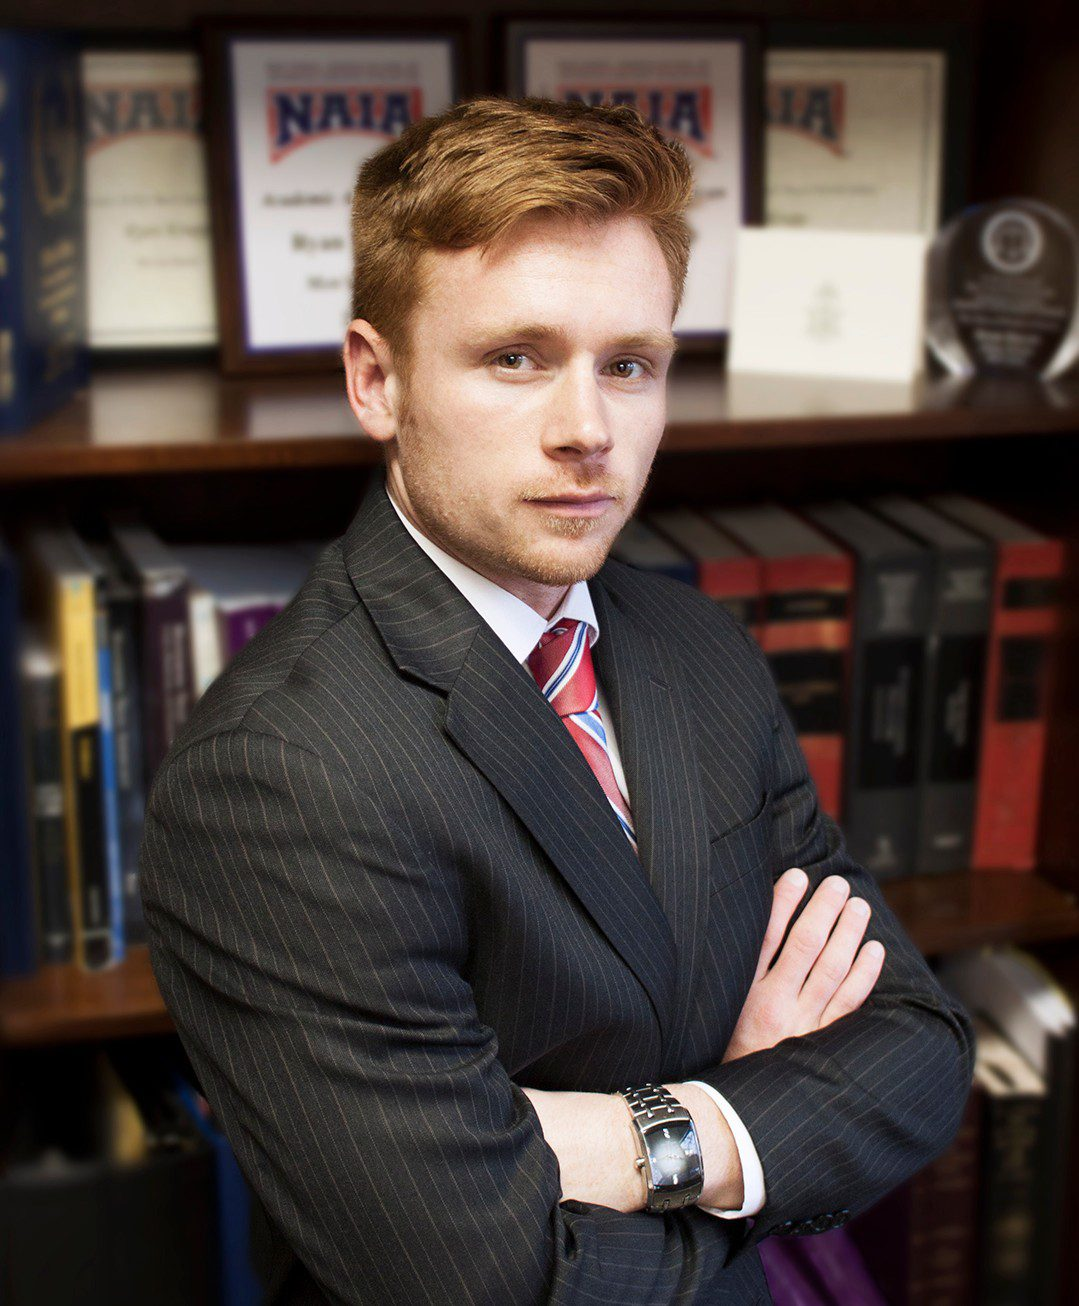 Ryan Krupp, St. Louis Lawyer